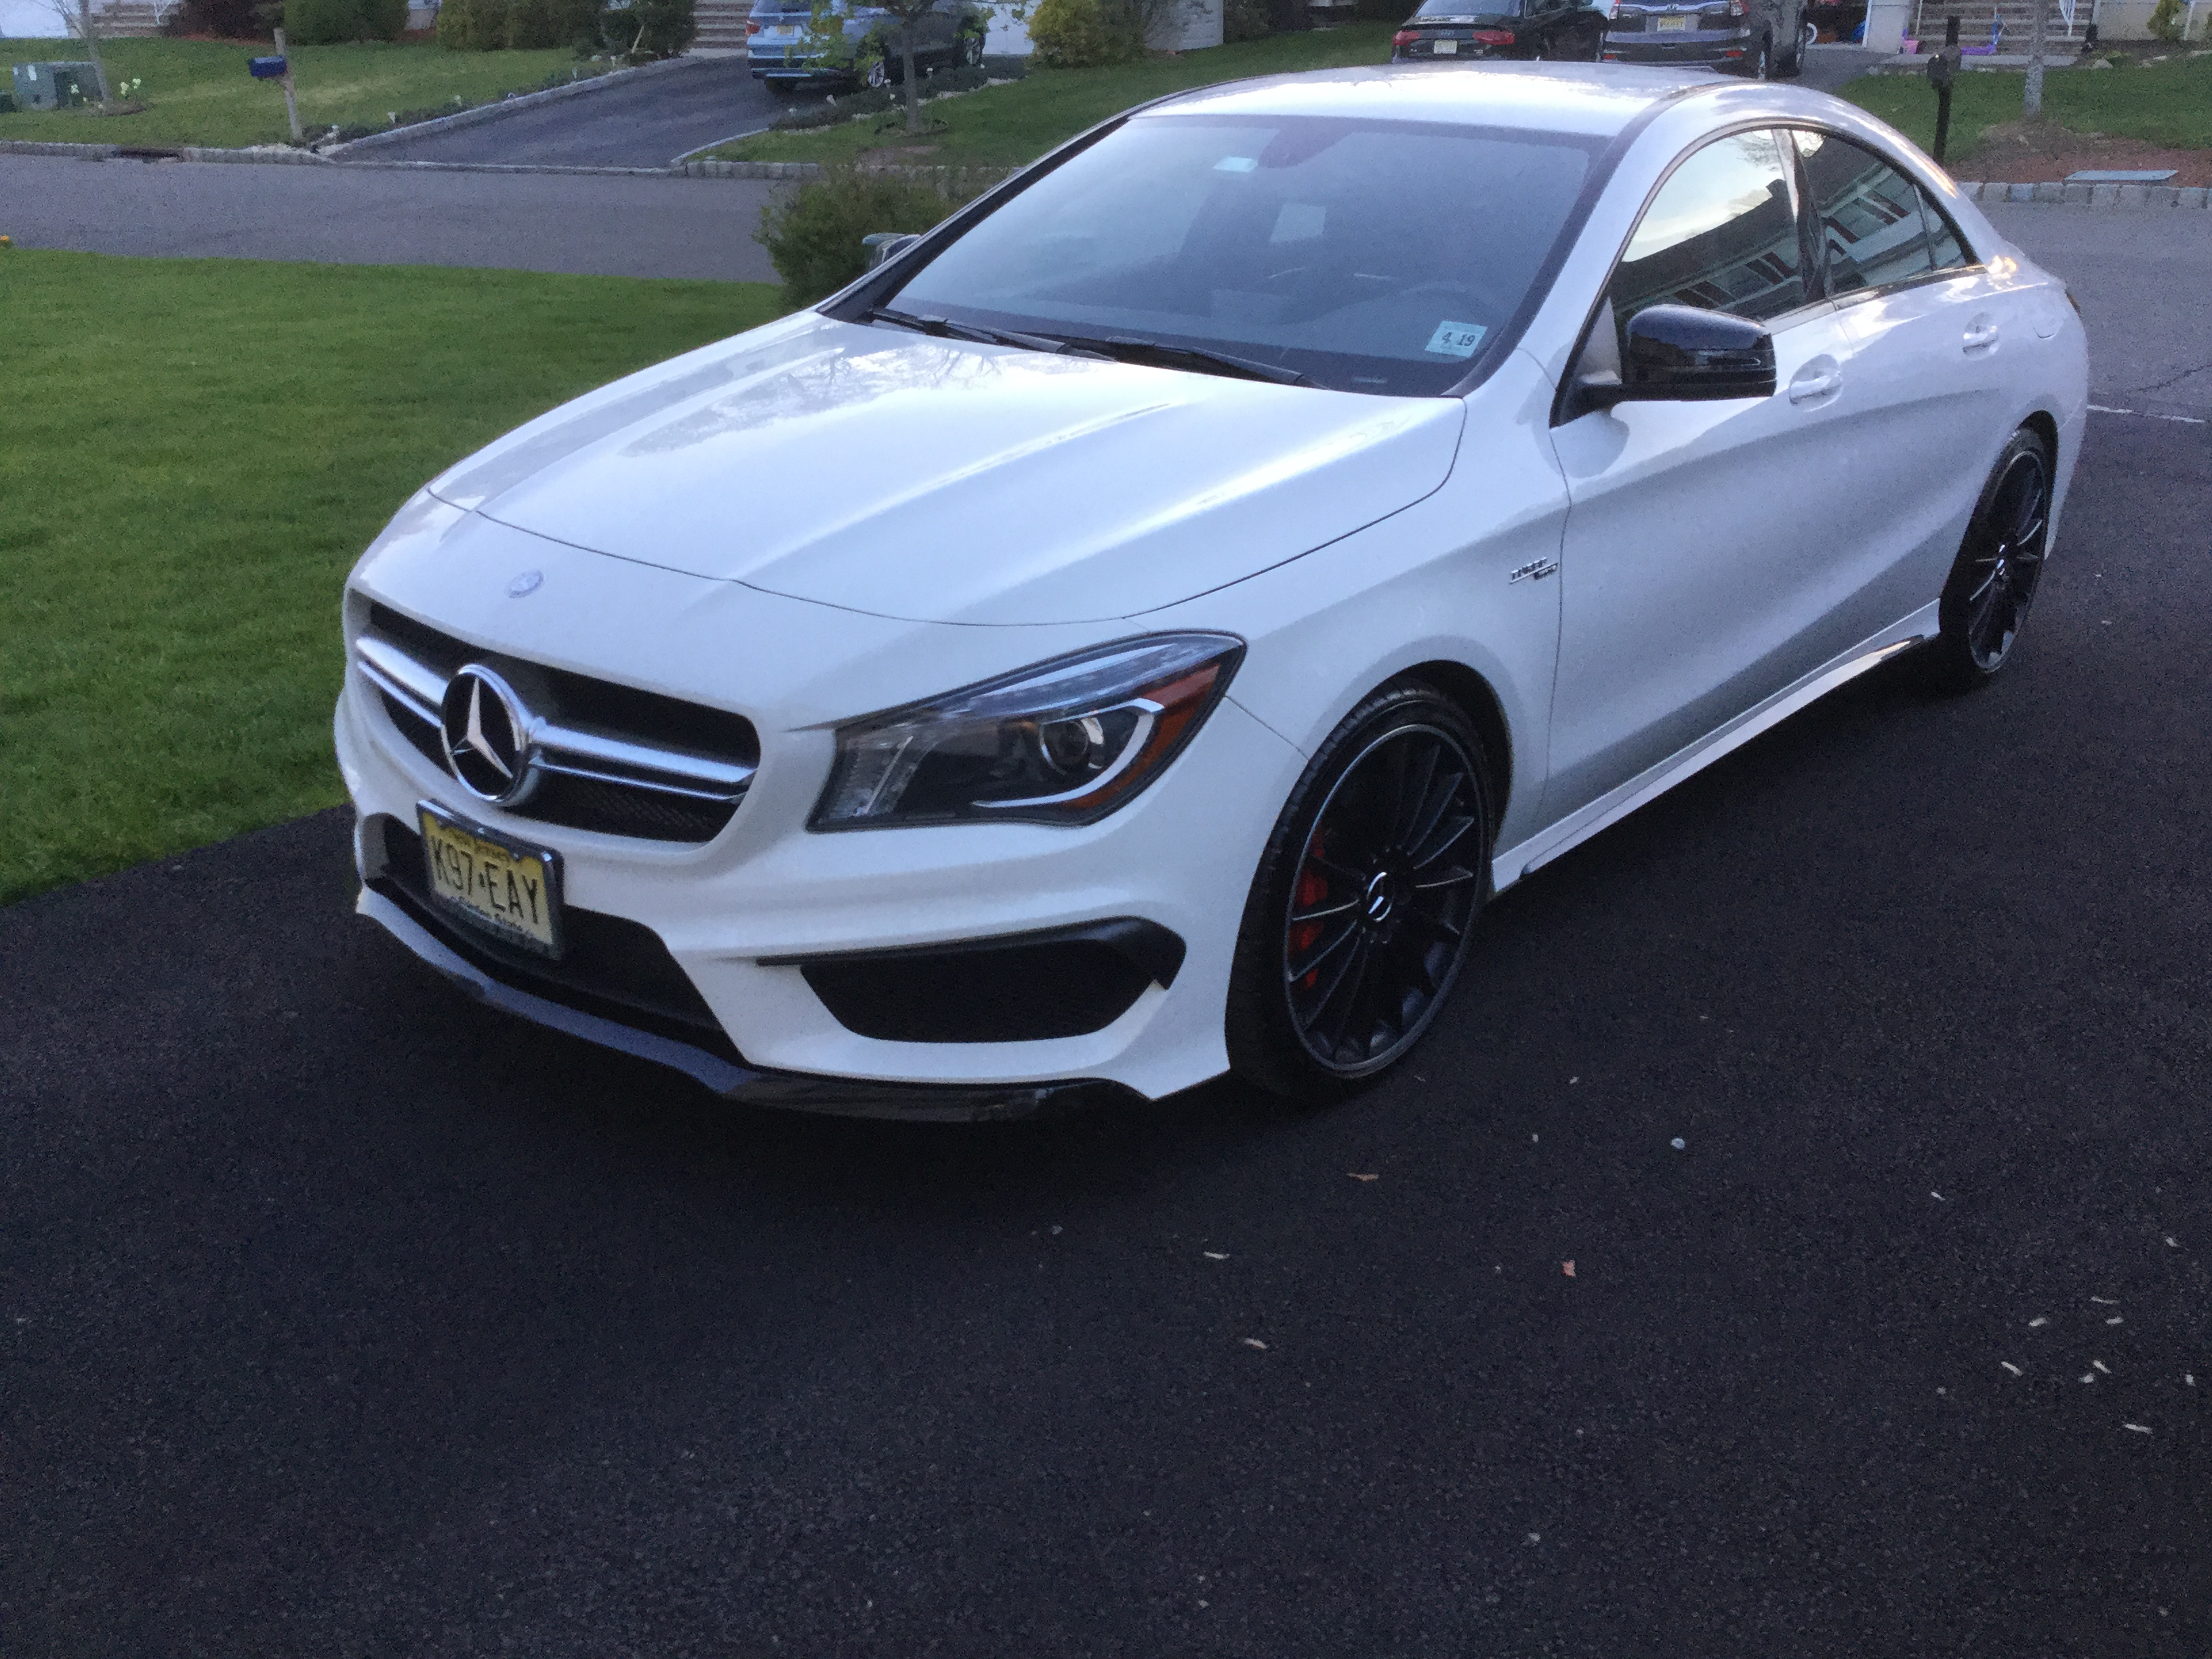 2014 cla 45 amg for sale 22k miles amg drivers package carbon fiber and much more. Black Bedroom Furniture Sets. Home Design Ideas